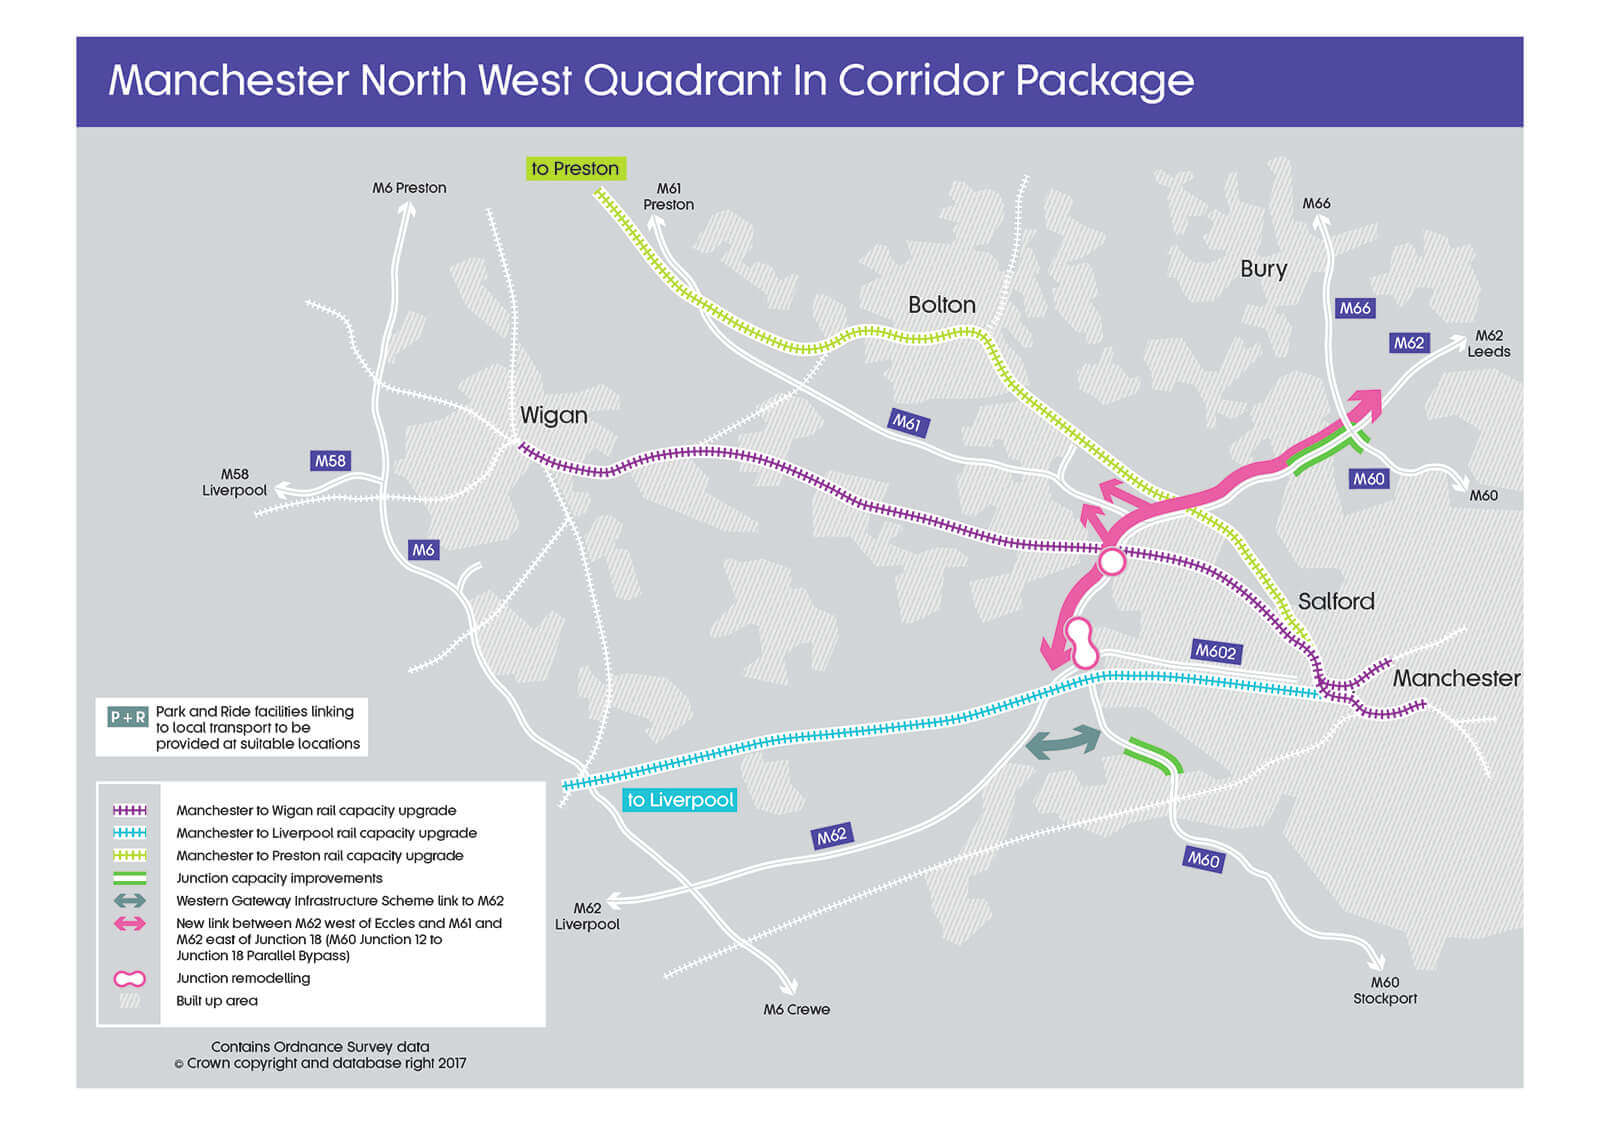 Manchester North West Quadrant Corridor